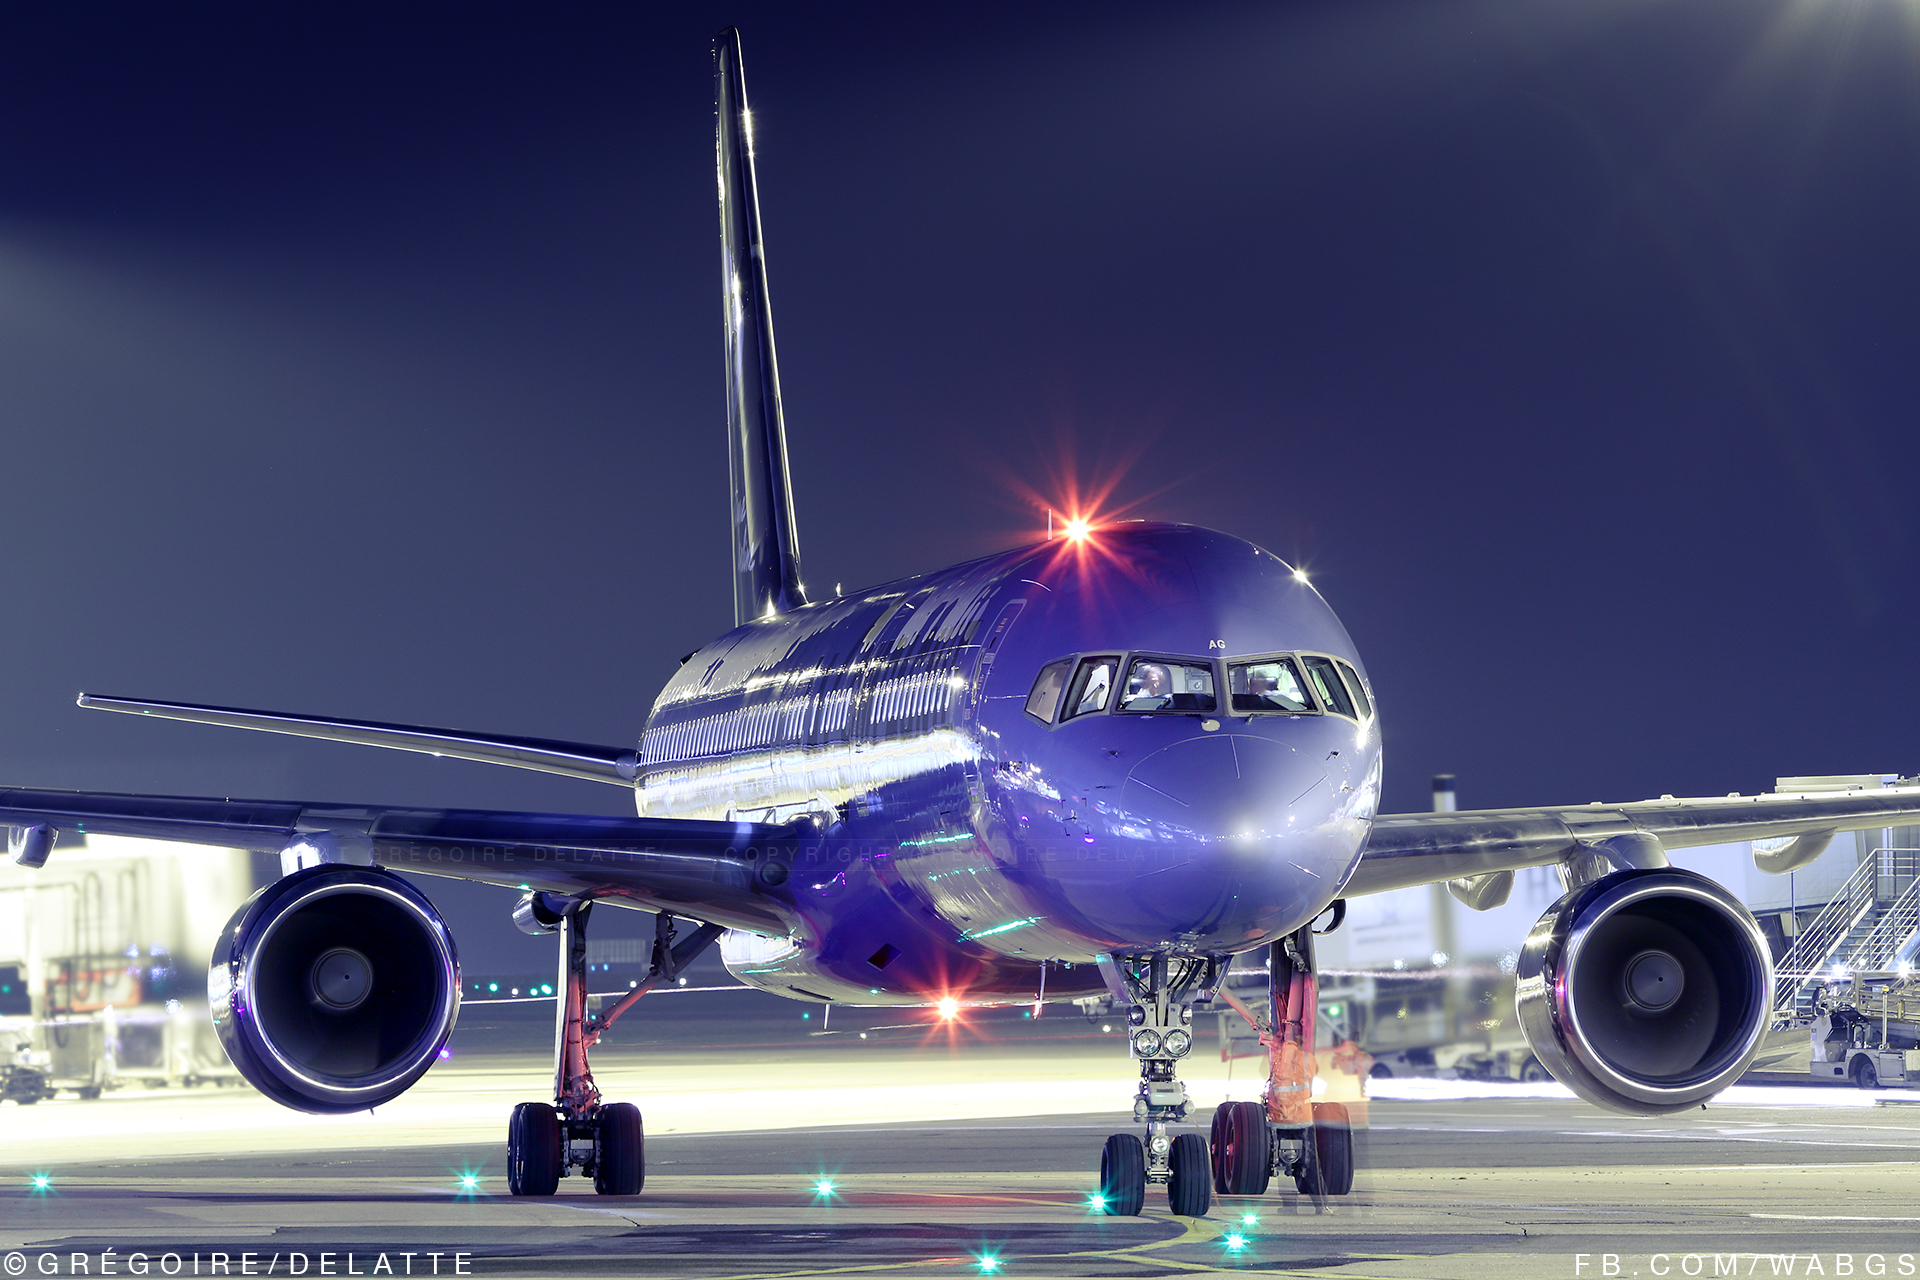 La Compagnie F-HTAG - Paris CDG at night